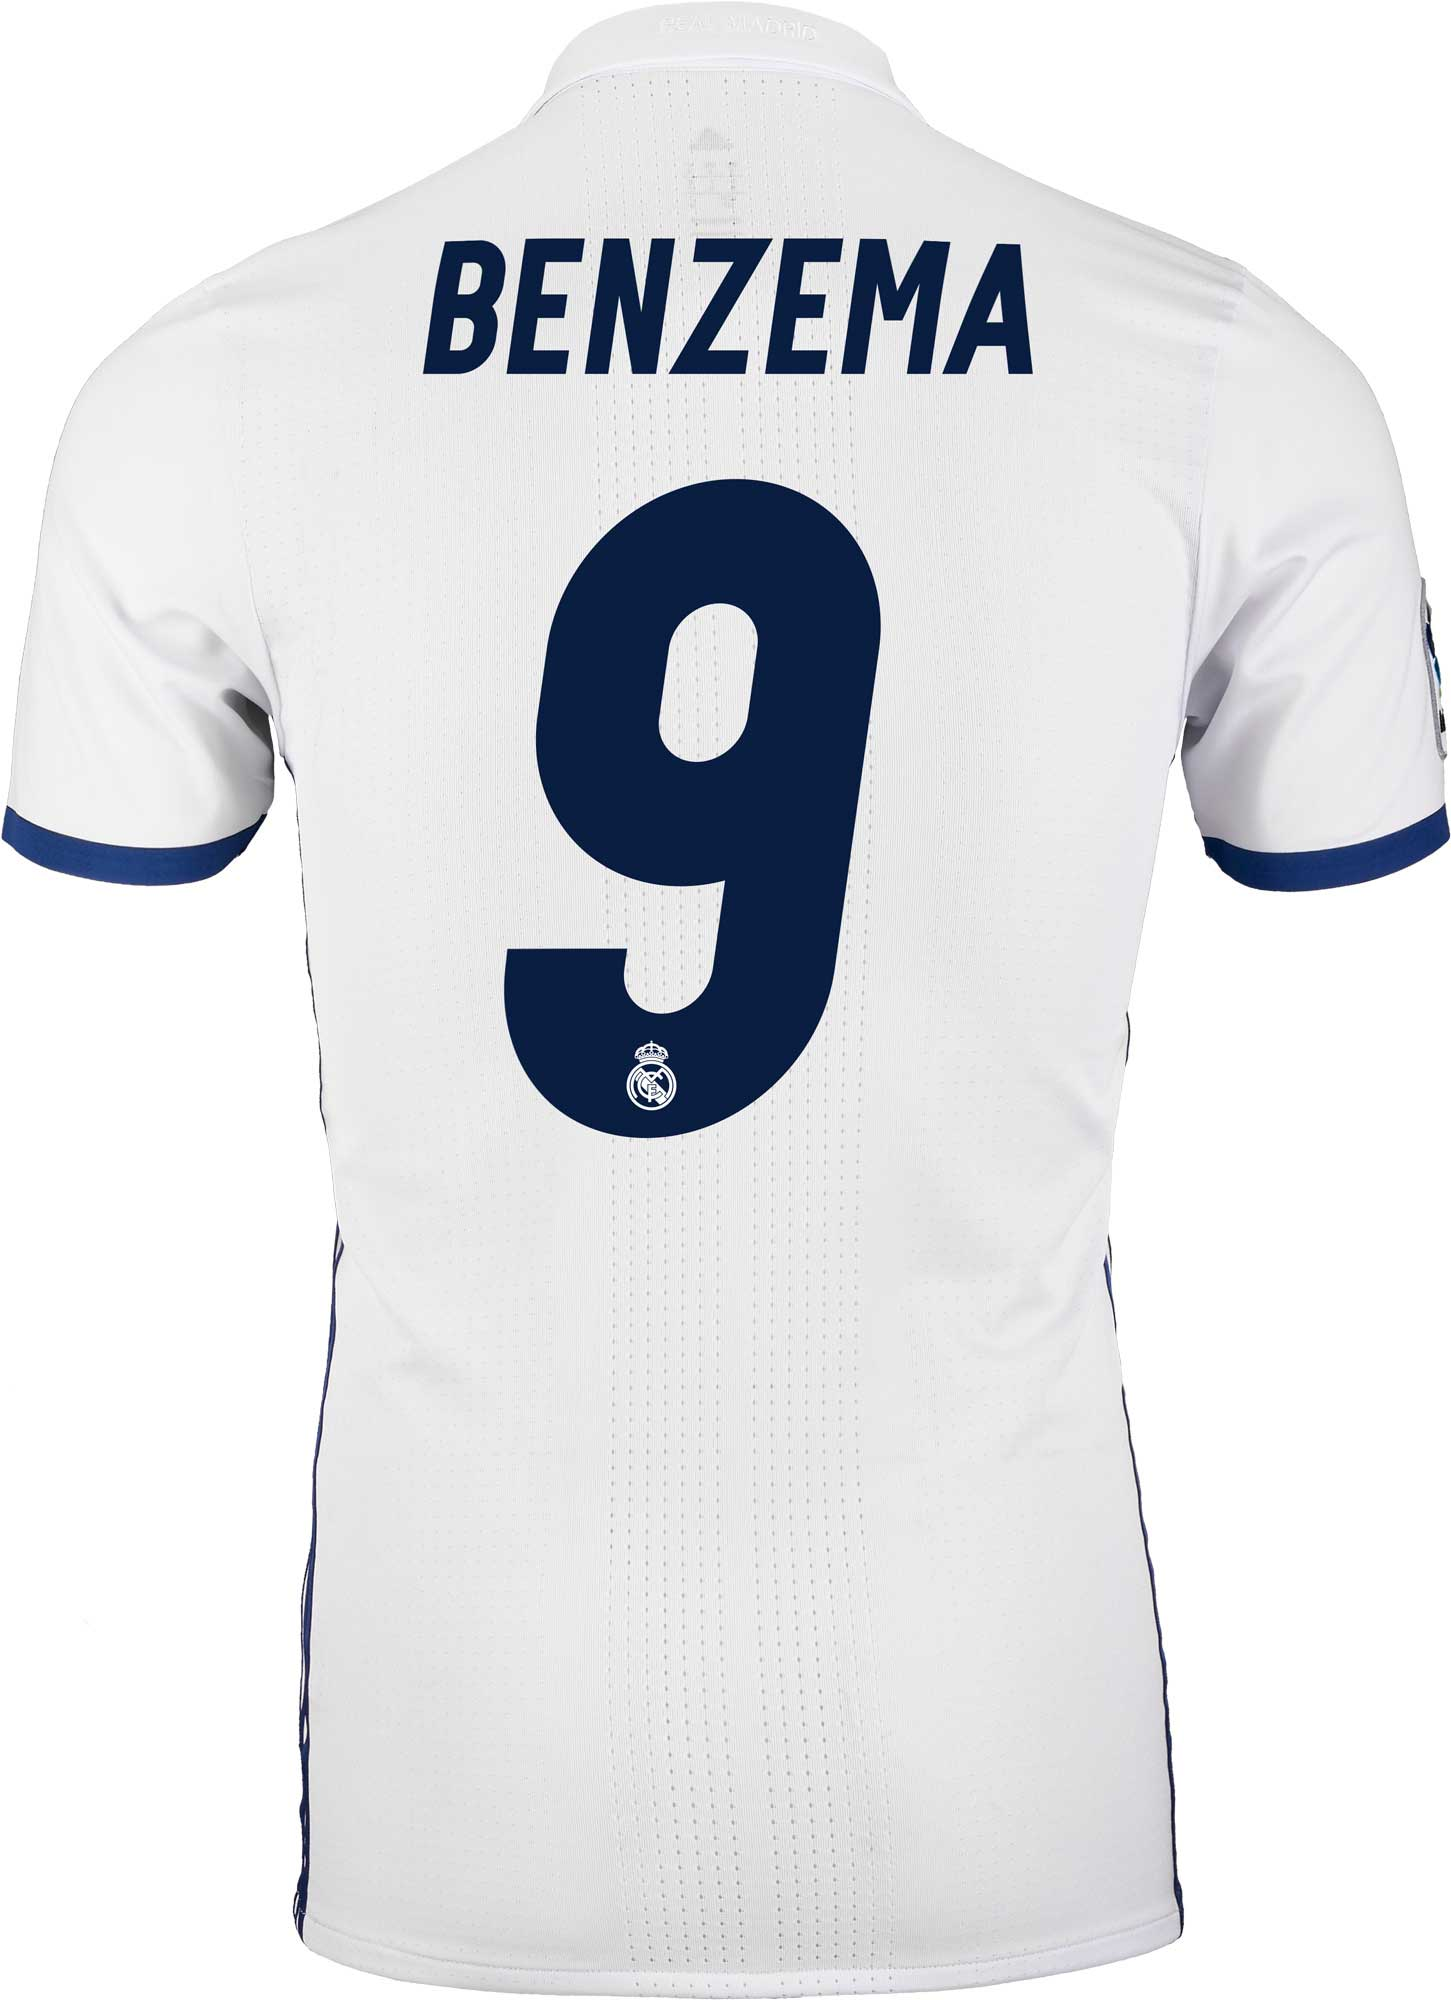 5bd1c1c51 adidas Kids Benzema Real Madrid Jersey - 2016 Real Madrid Jerseys